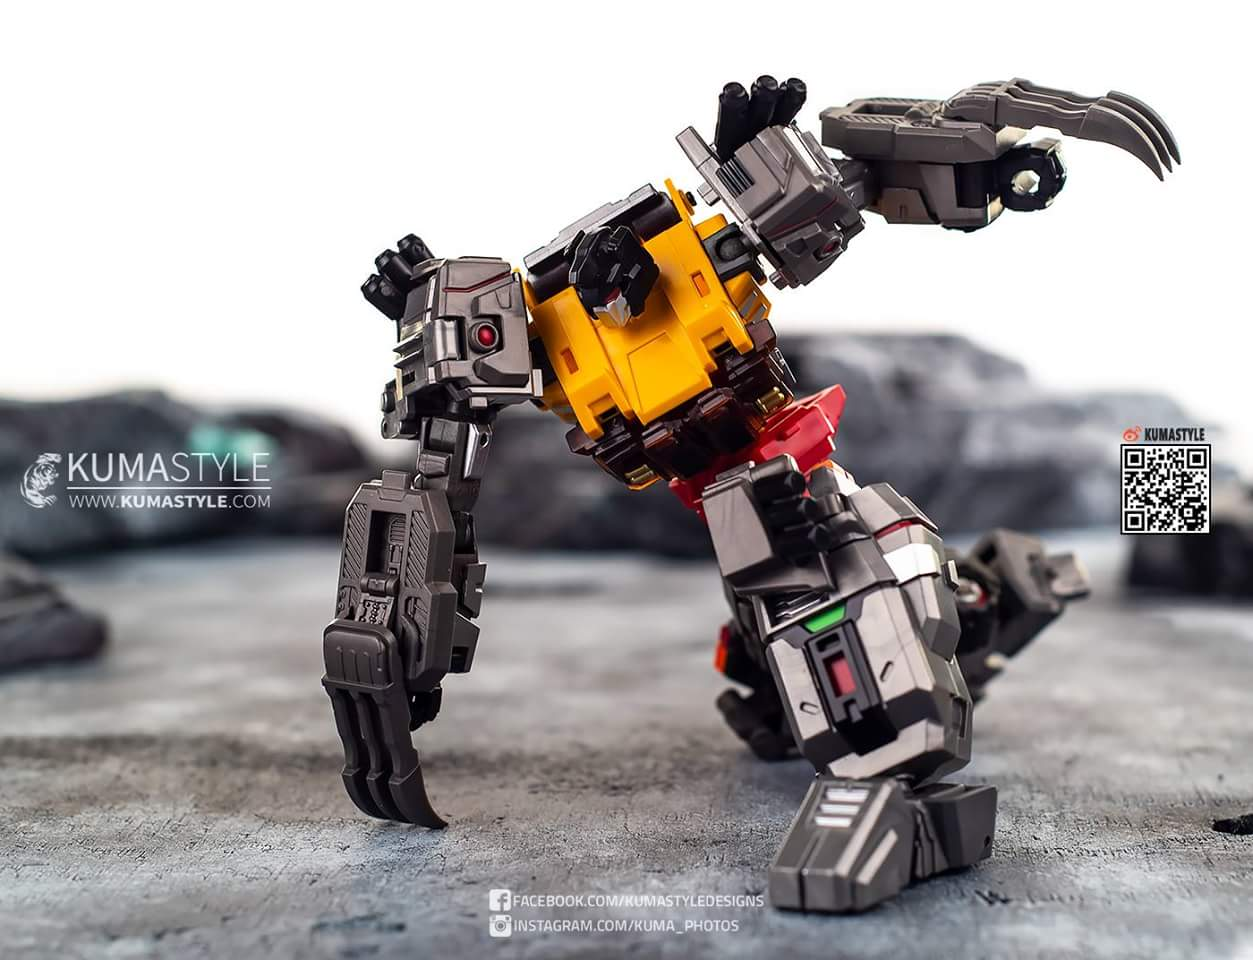 [FansProject] Produit Tiers - Jouets LER (Lost Exo Realm) - aka Dinobots - Page 4 U9nsB3DH_o